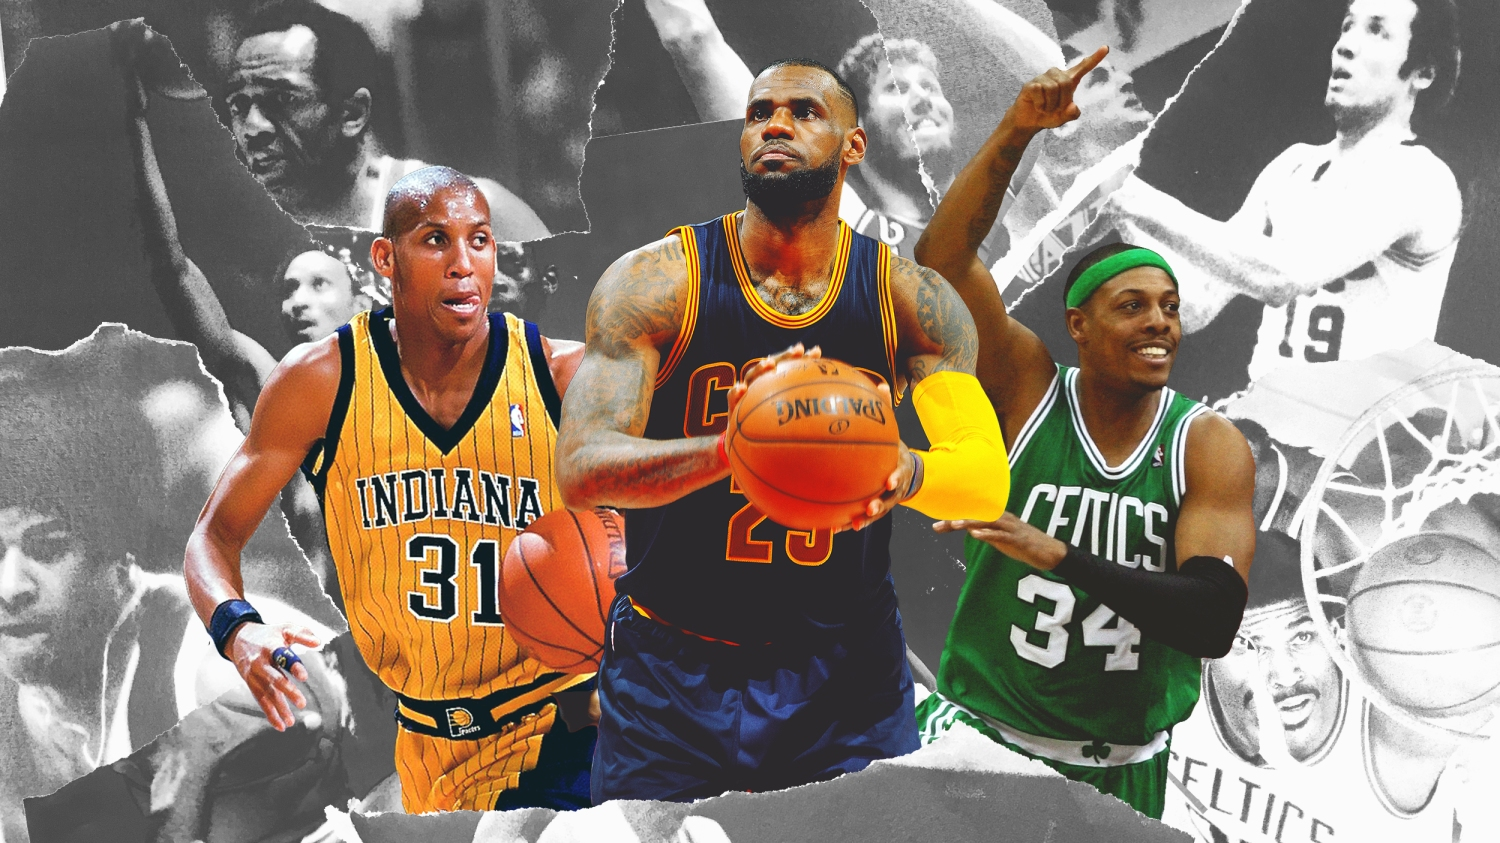 e7da2d0e59c The NBA s 50 Greatest Players list  The remix — The Undefeated